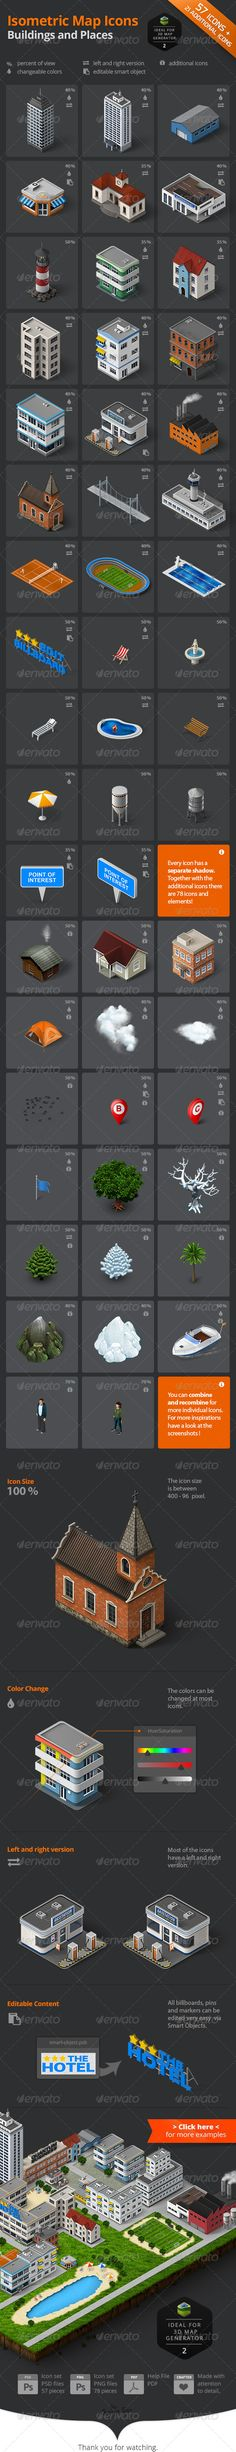 Isometric Map Icons - Buildings and Places | Buy and Download: http://graphicriver.net/item/isometric-map-icons-buildings-and-places/8081725?WT.ac=category_thumb&WT.z_author=Orange_Box&ref=ksioks